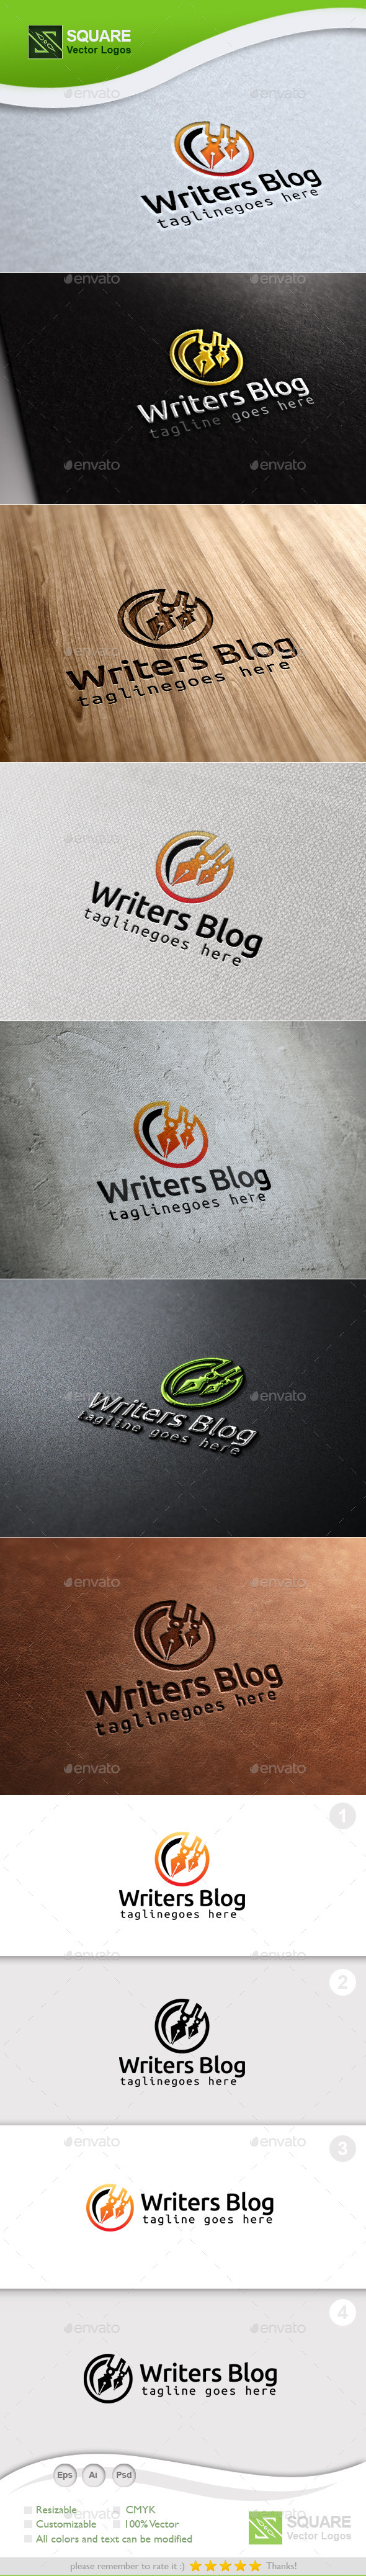 Writer Blog Custom Logo Template - Symbols Logo Templates